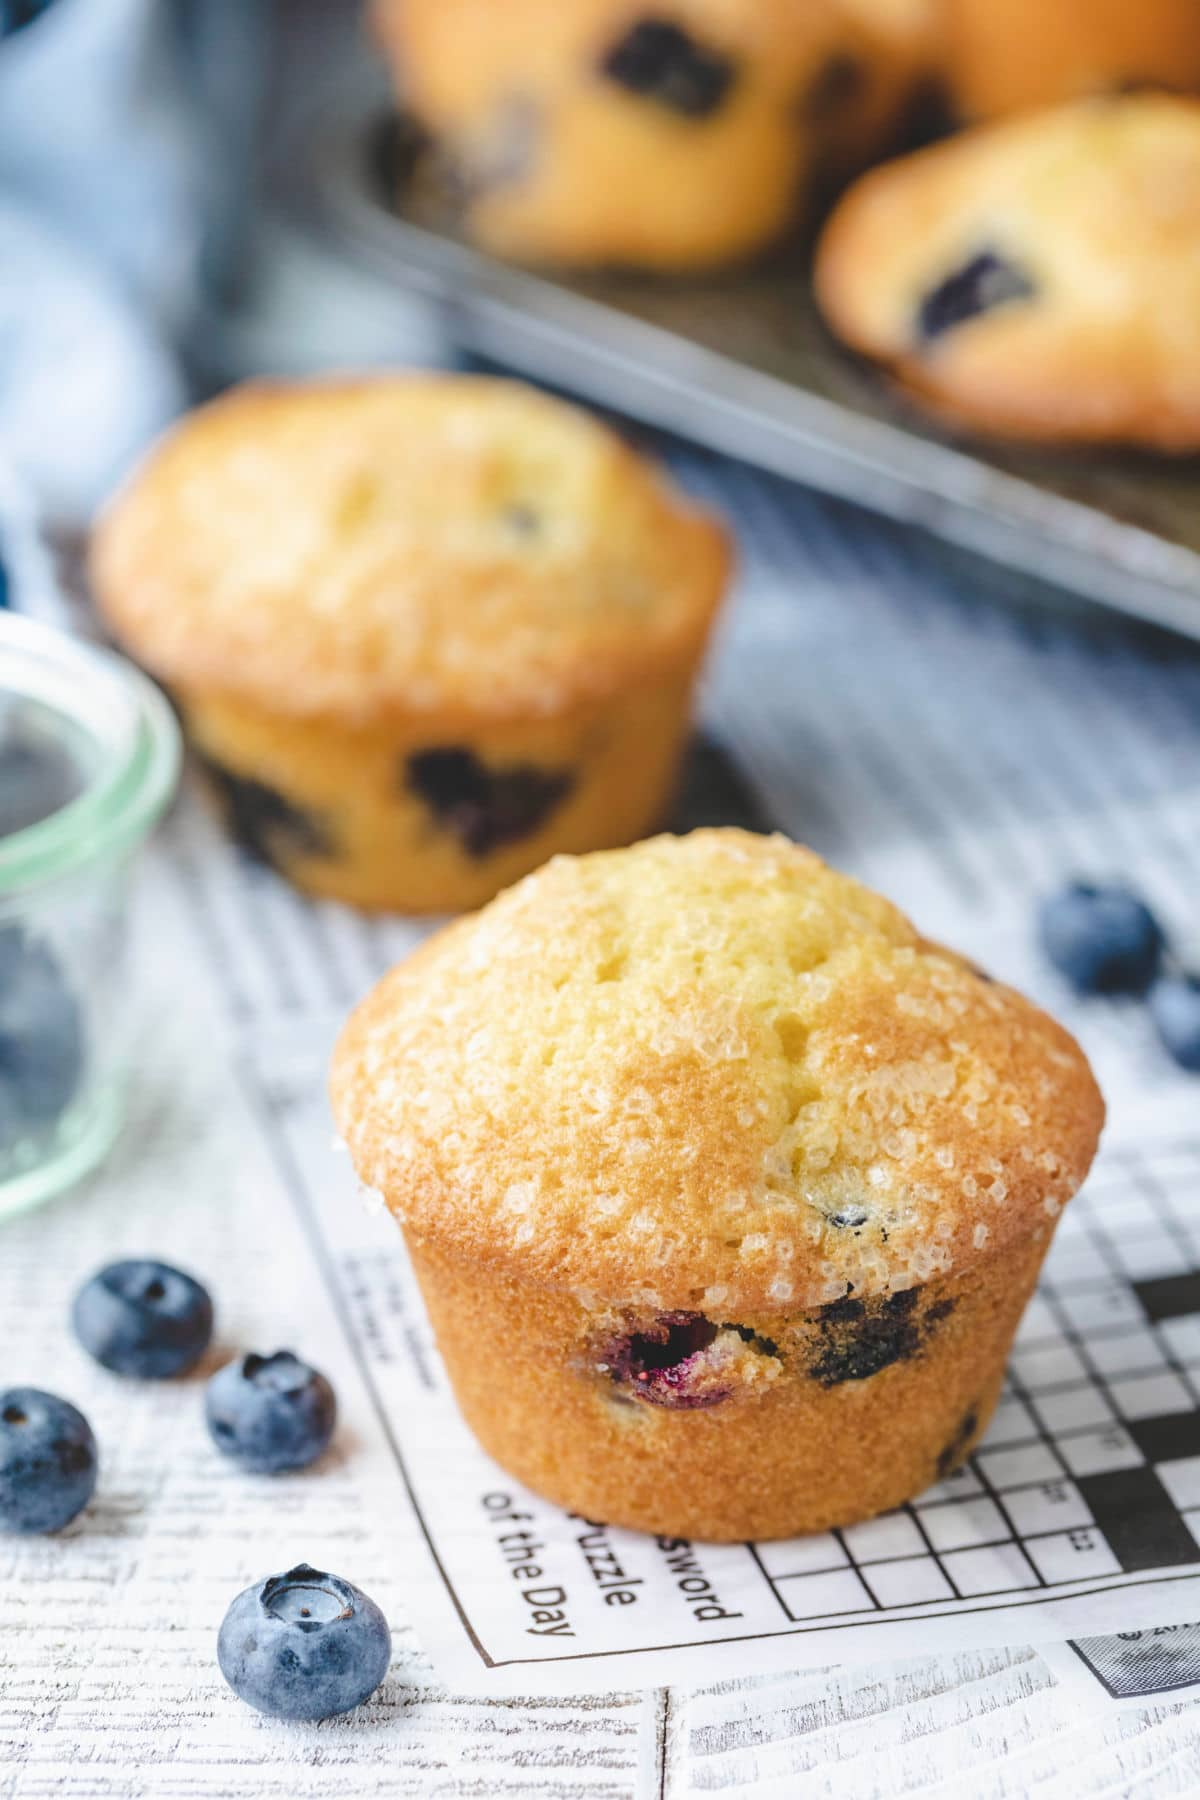 Blueberry muffins on a piece of deli paper with blueberries scattered around them.